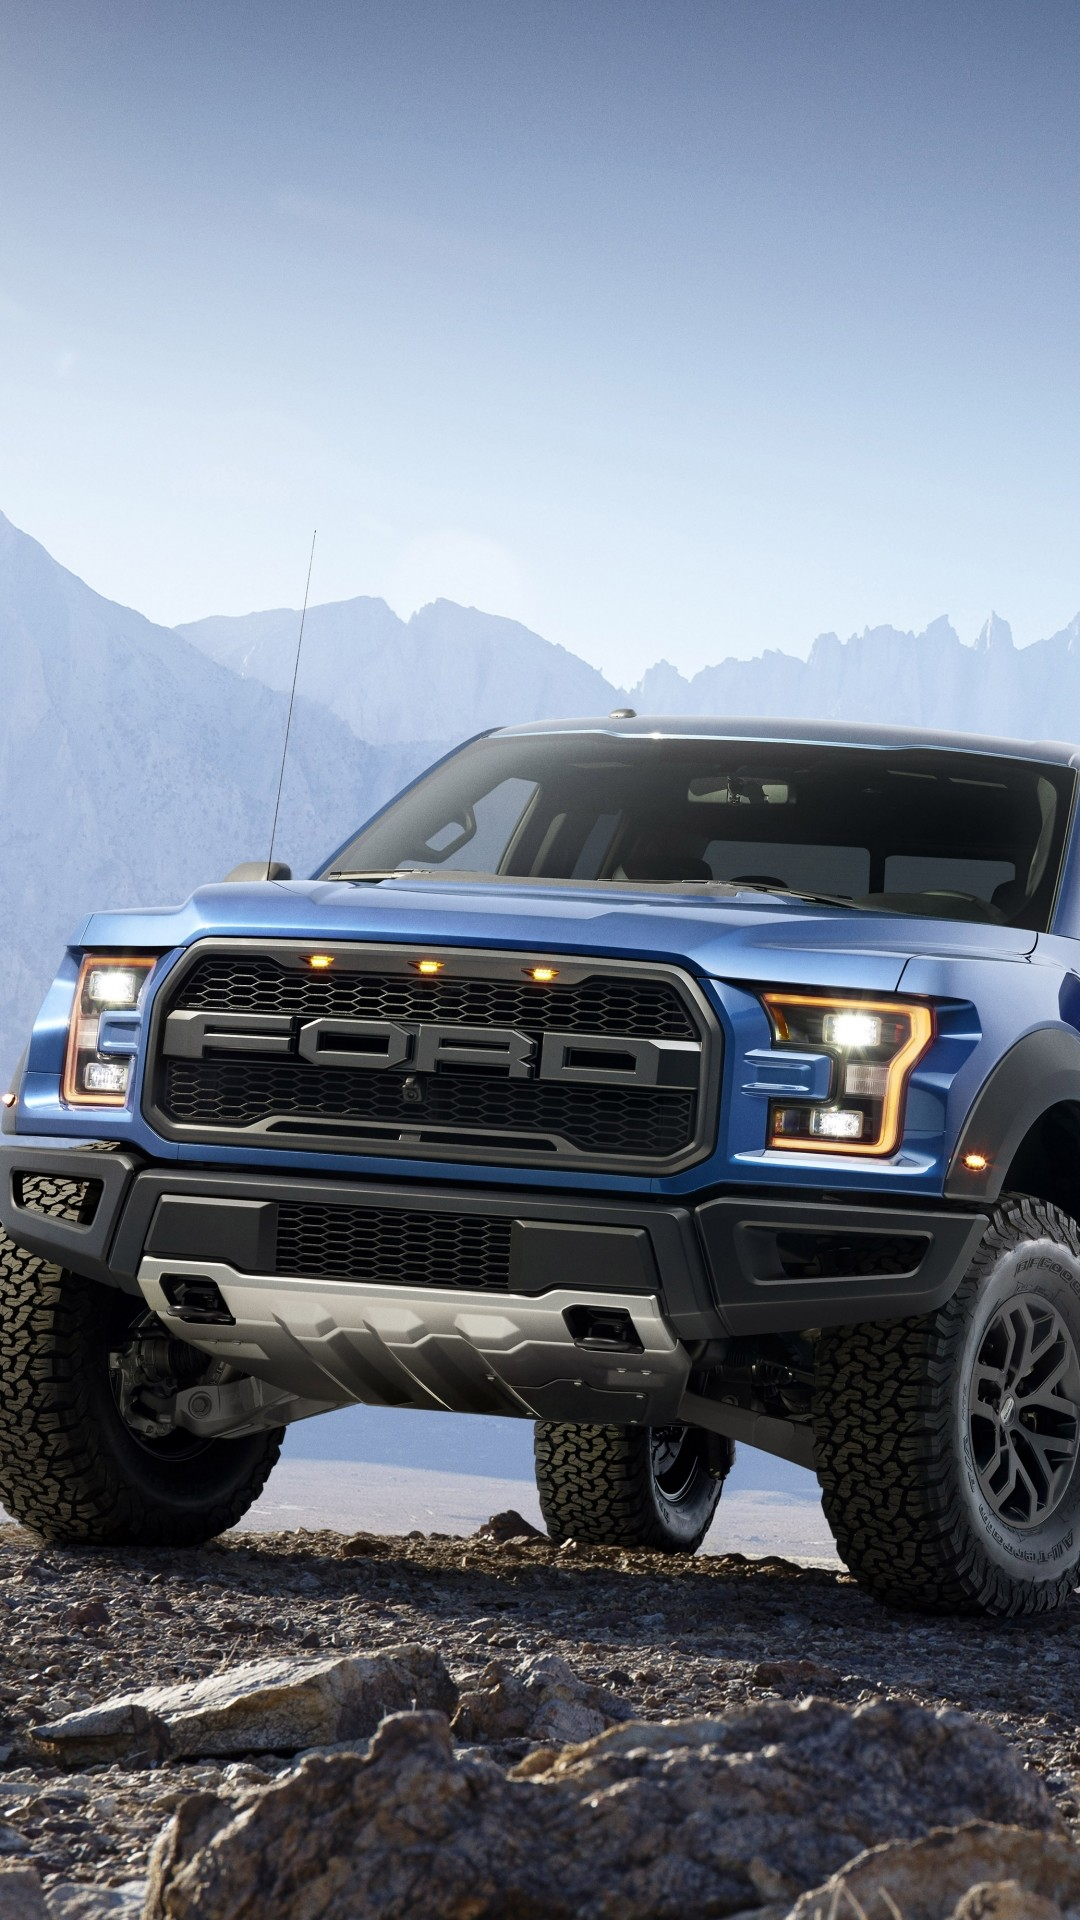 Live Car Wallpapers For Iphone 7 2018 Ford Raptor Wallpaper 70 Images